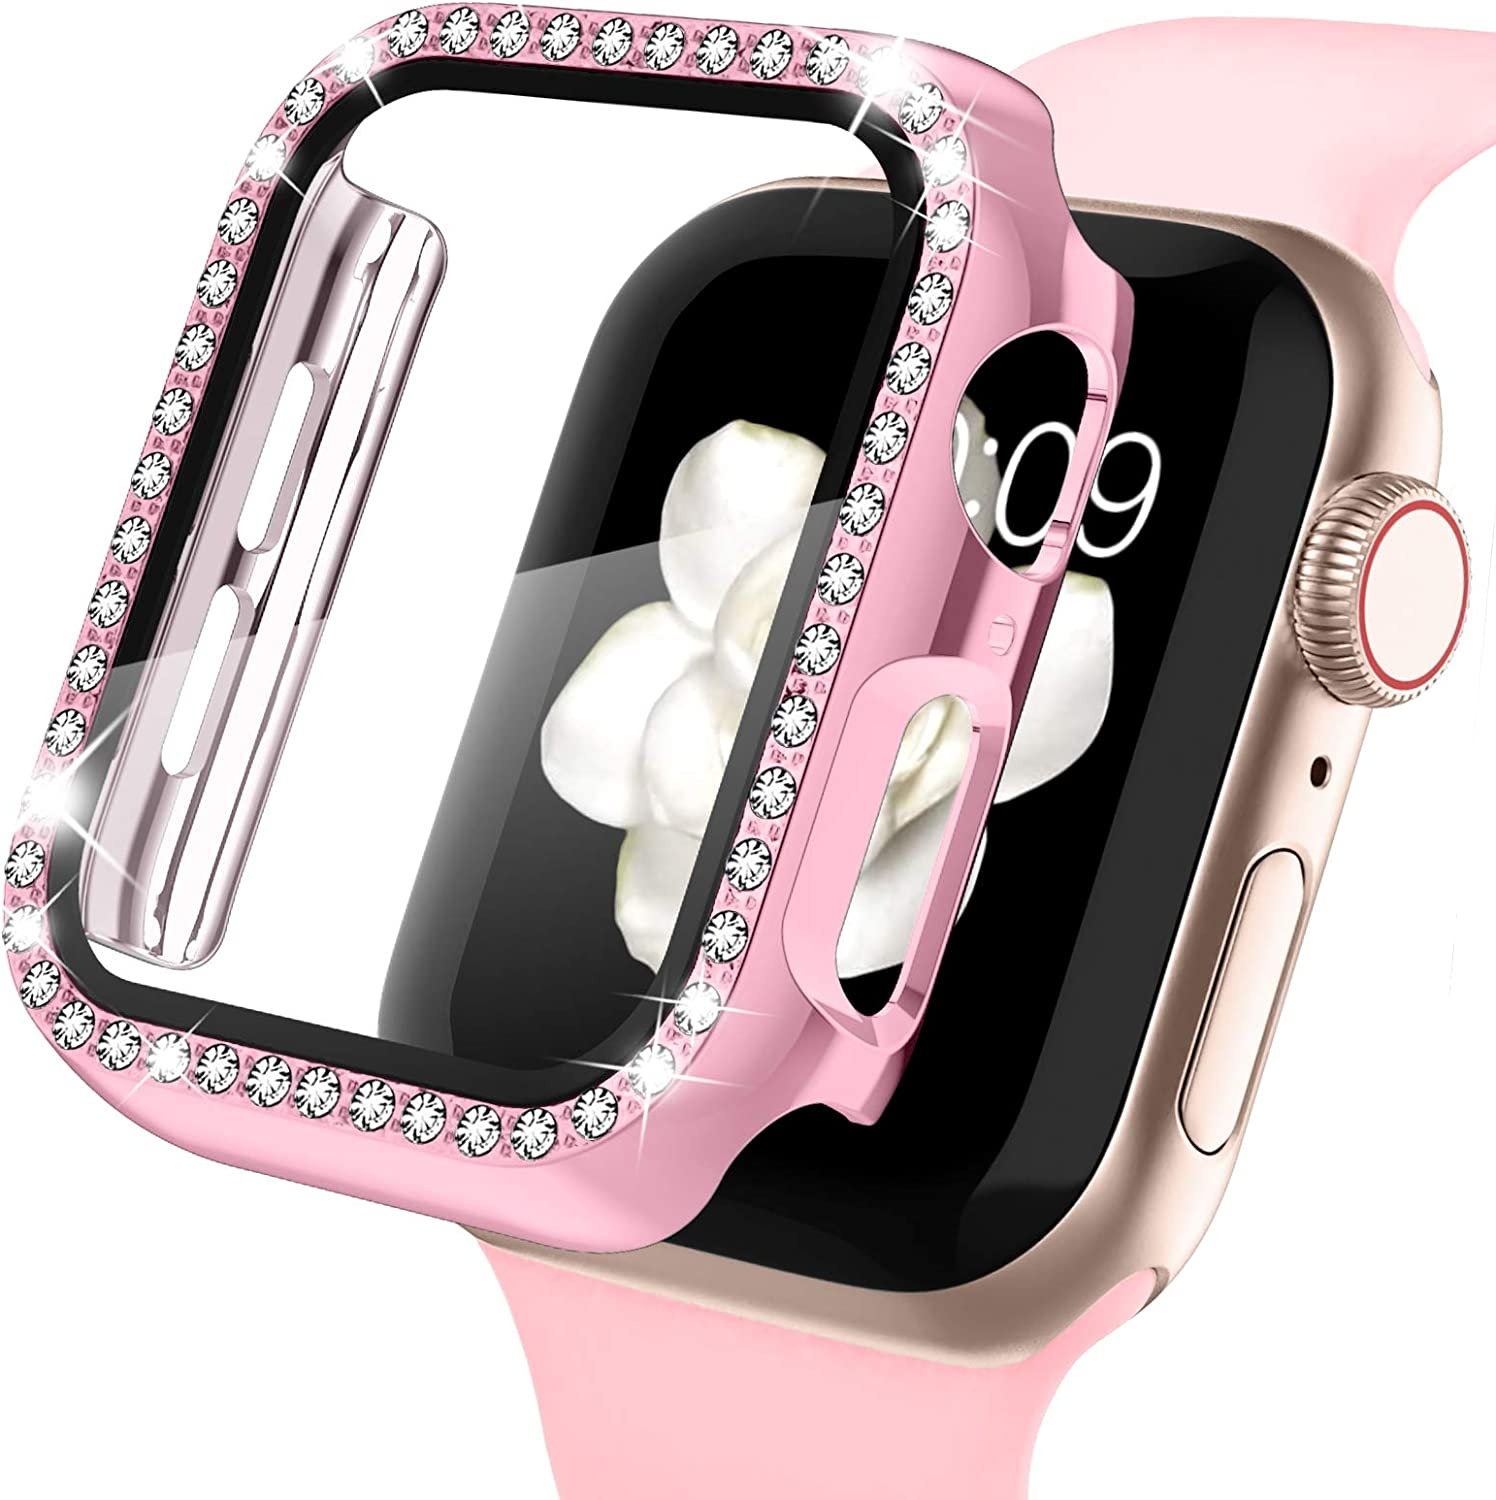 Recoppa Apple Watch Case with Screen Protector for Apple Watch 38mm Series 3/2/1, Bling Crystal Diamond Rhinestone Ultra-Thin Bumper Full Cover Protective Case for Women Girls iWatch Rosepink